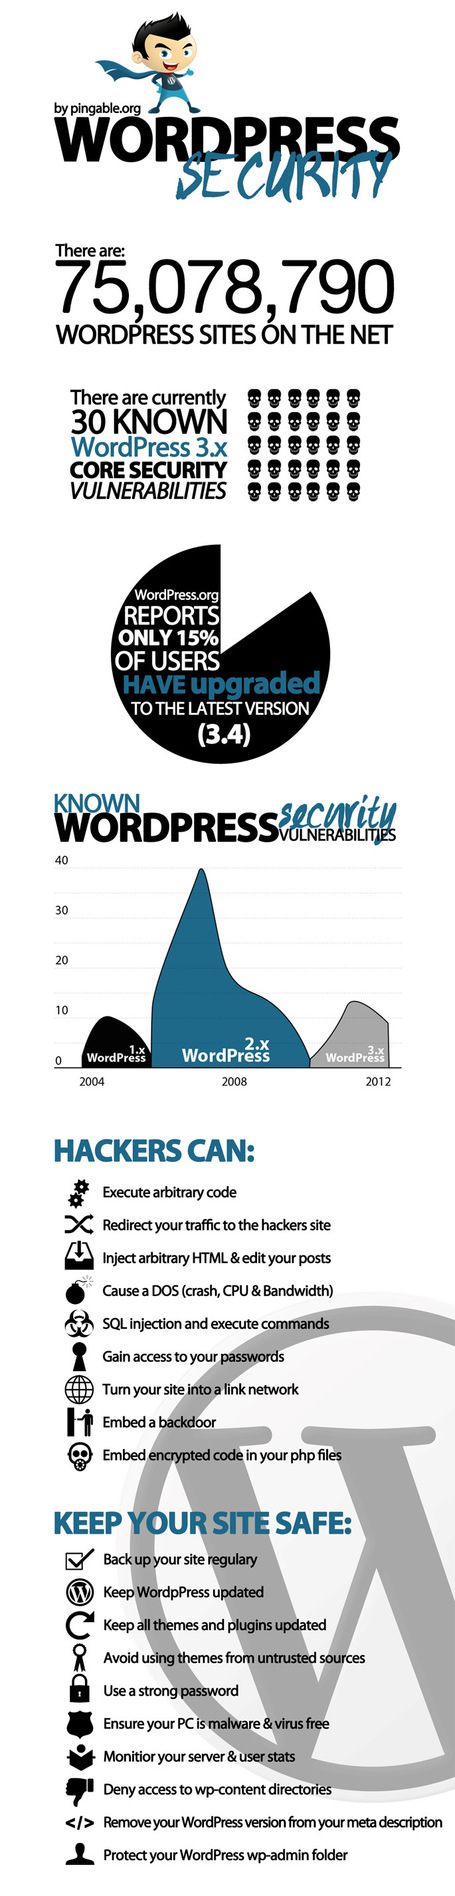 WordPress Security #infographic via @BerriePelser | Clothing Manufacturer and Exporter from Bangladesh | Scoop.it